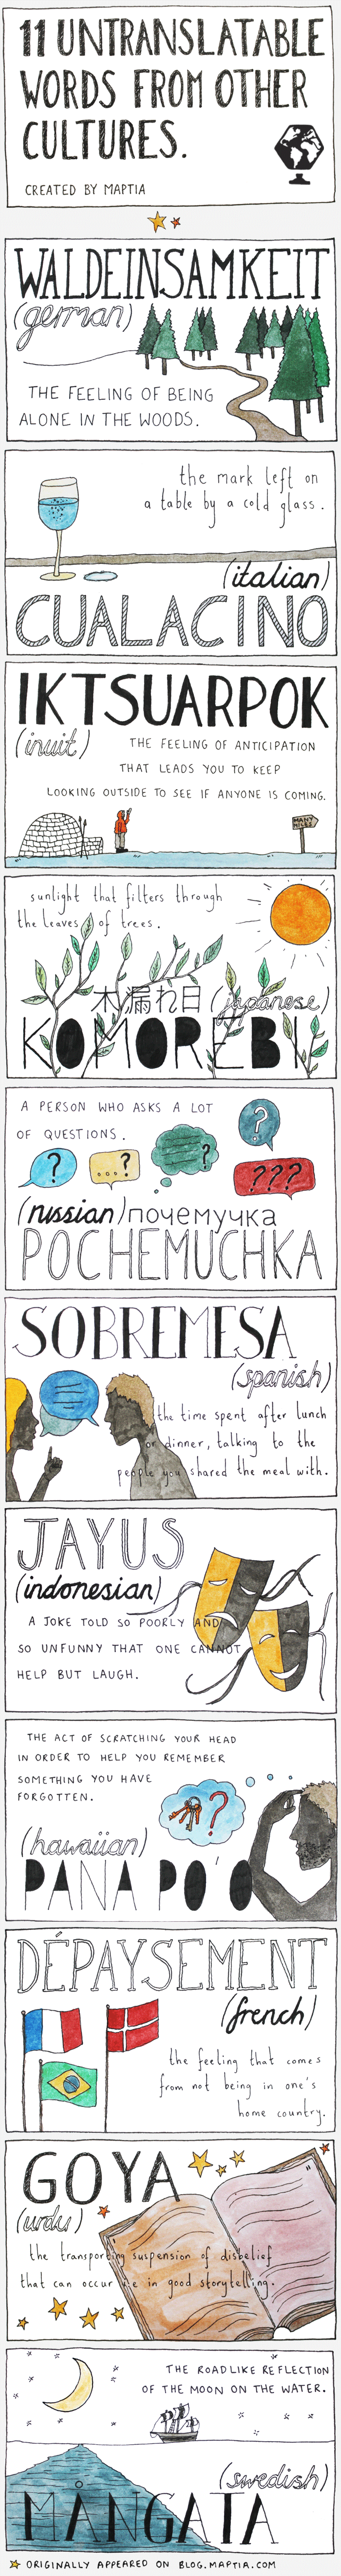 11 untranslatable words from other cultures #infographic